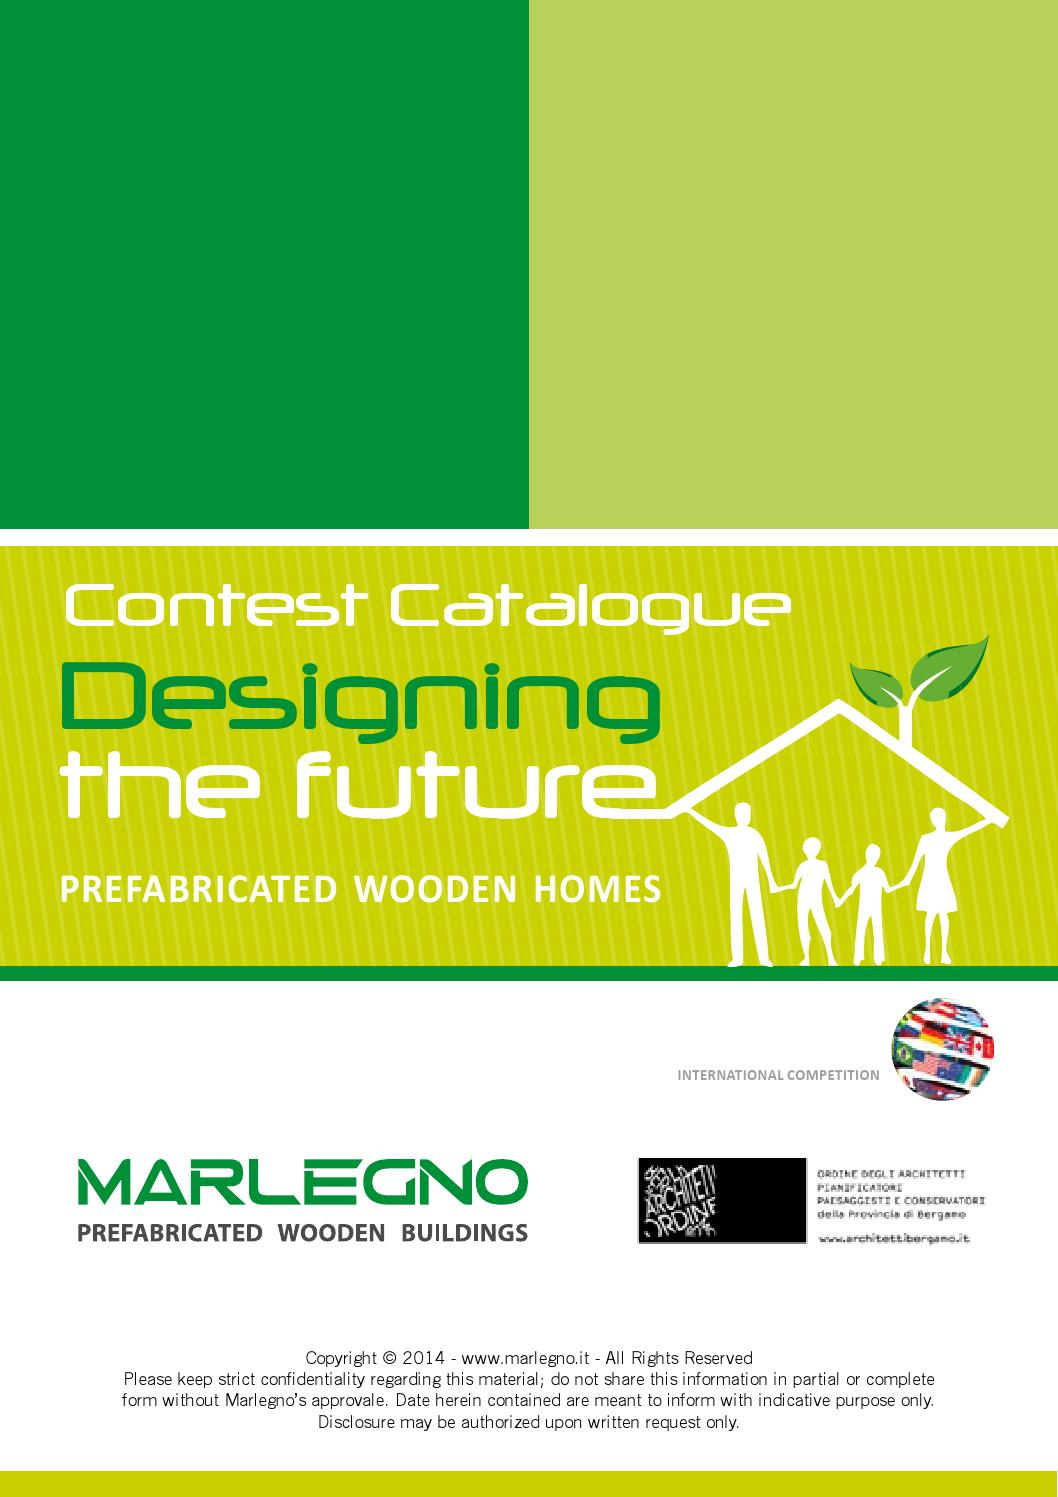 "Ordine Ingegneri Potenza Albo contest catalogue ""designing the future"" by marlegno - issuu"